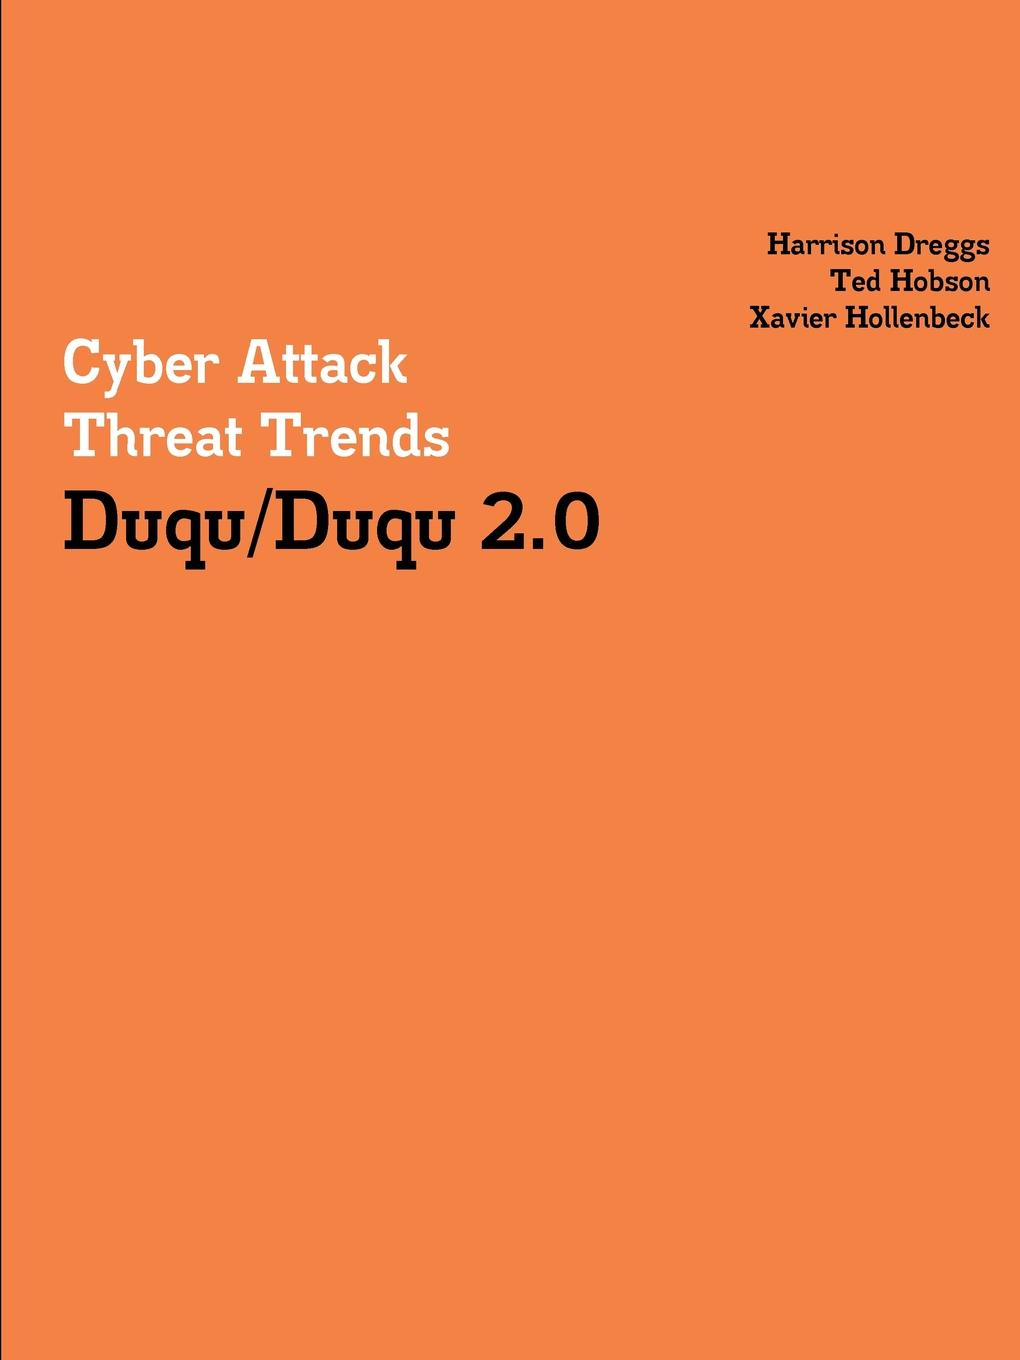 Harrison Dreggs, Ted Hobson, Xavier Hollenbeck Cyber Attack Threat Trends. Duqu/Duqu 2.0 tony ucedavelez risk centric threat modeling process for attack simulation and threat analysis